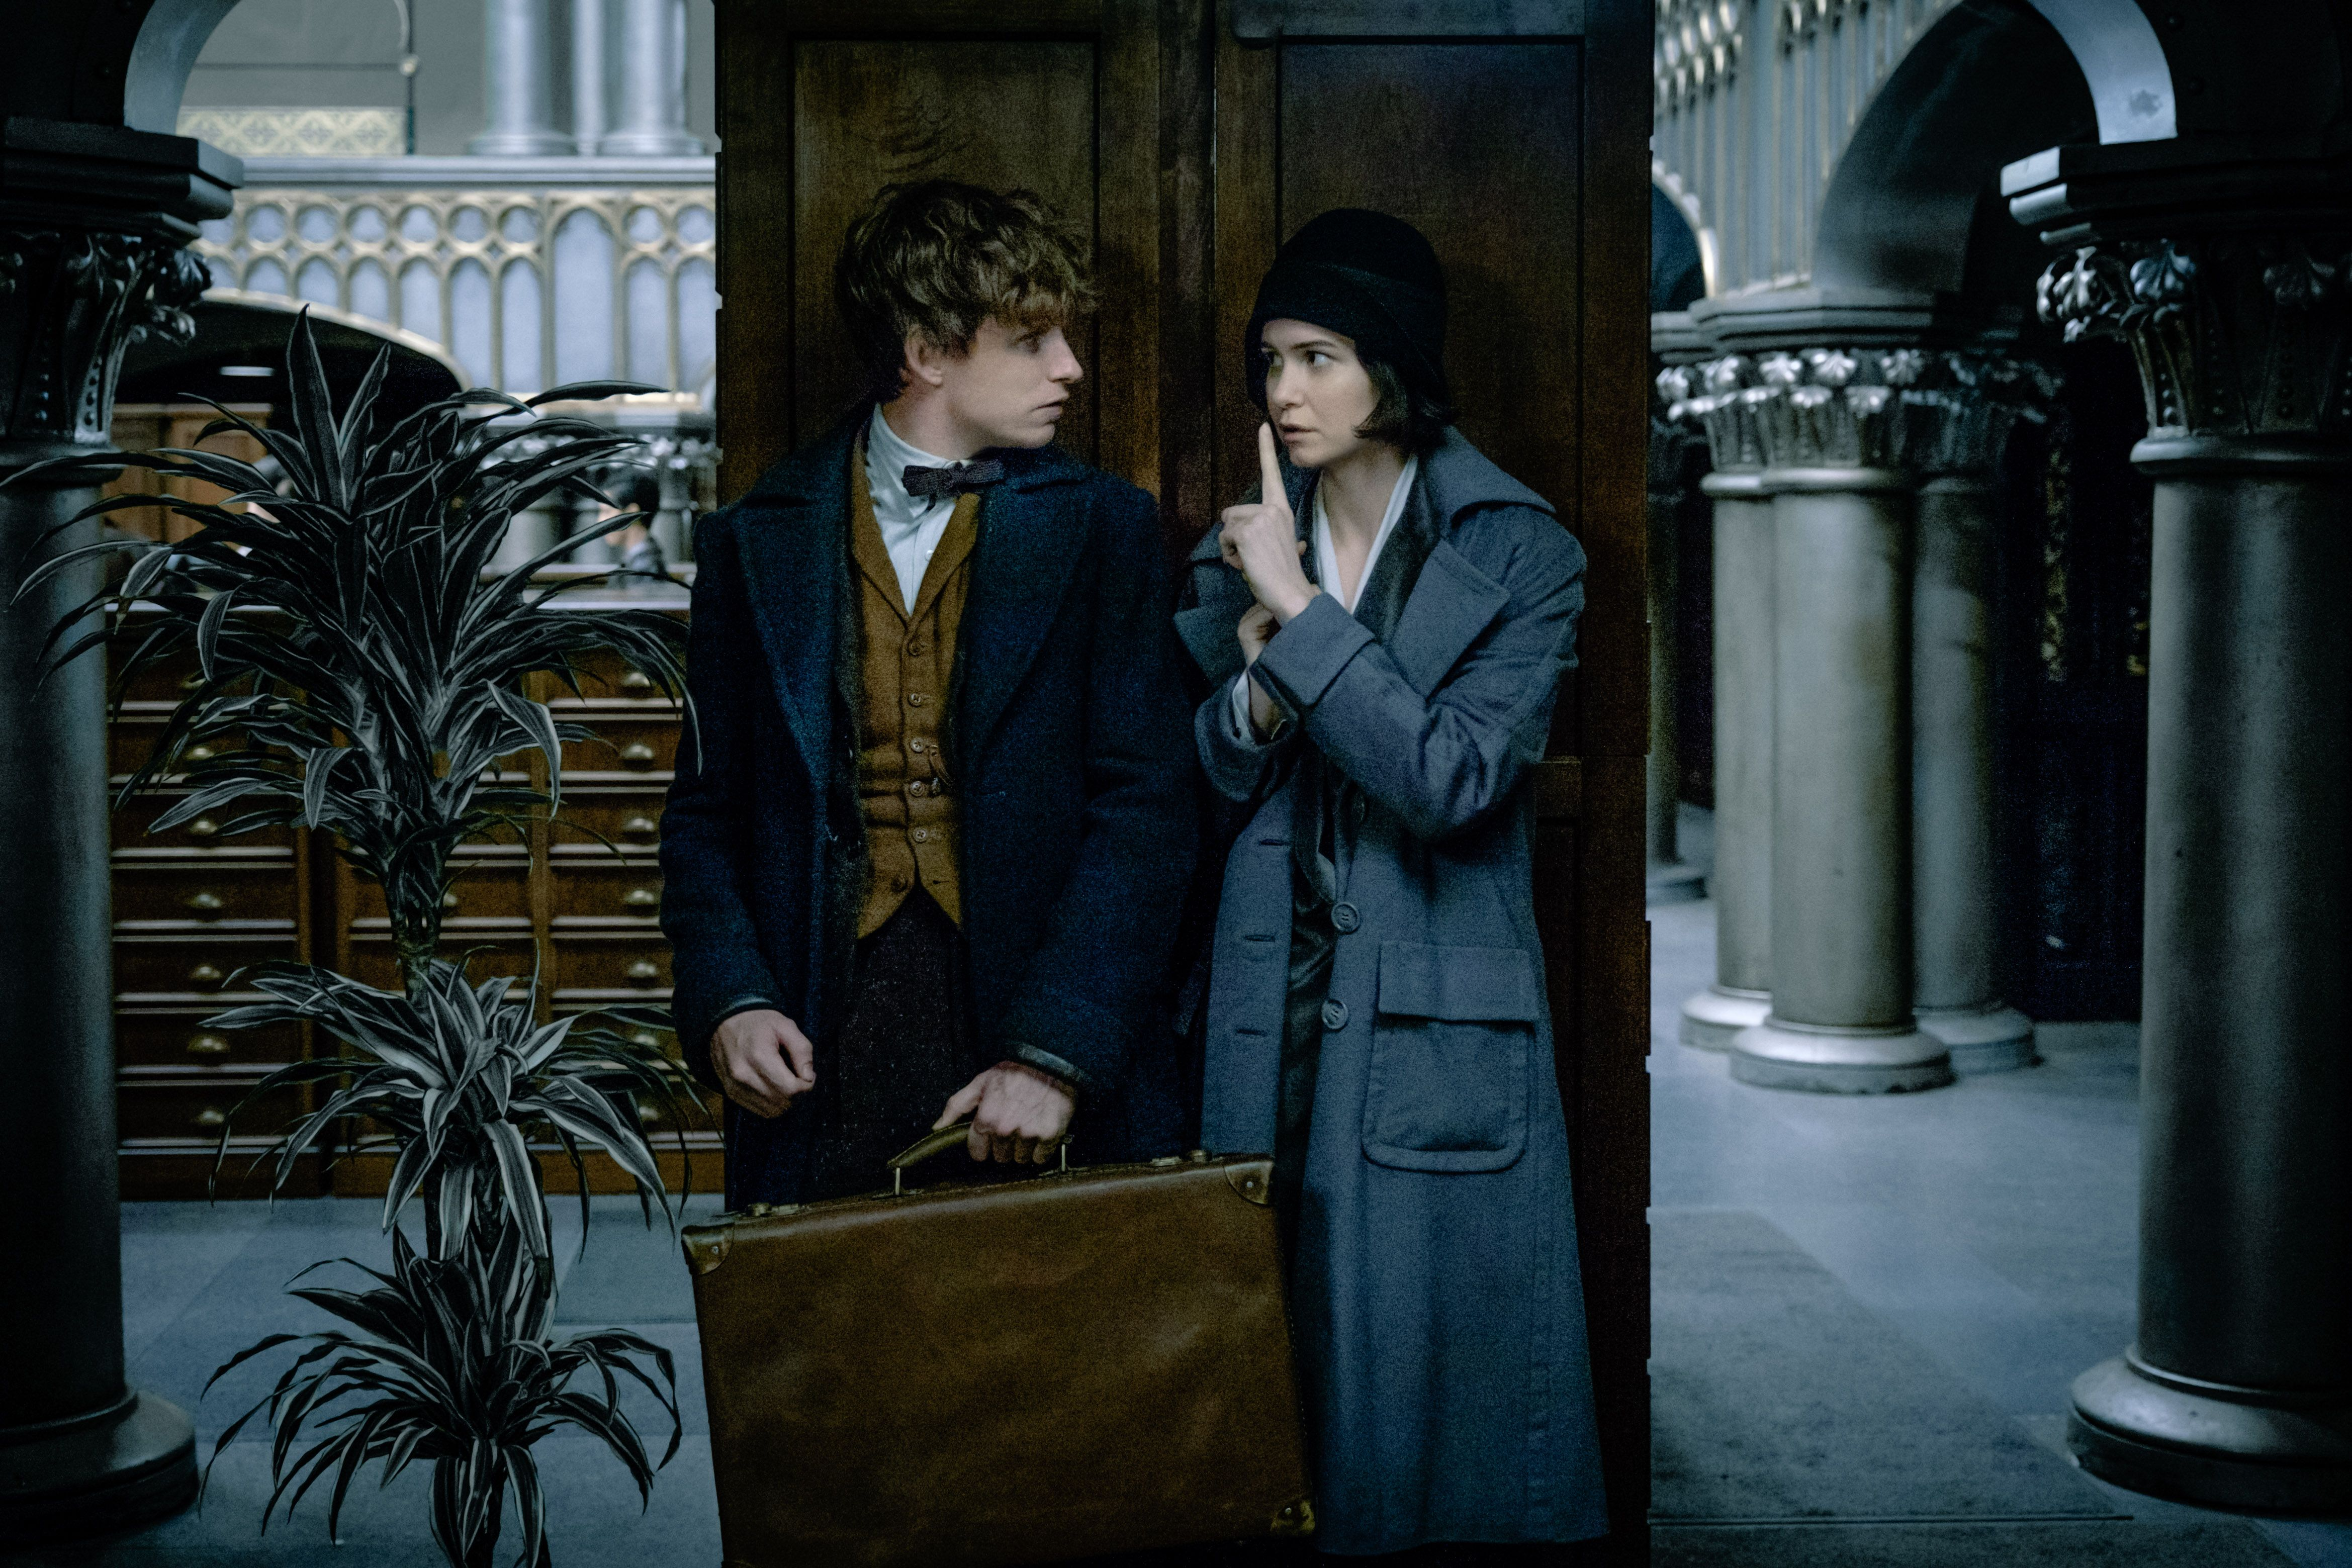 Fantastic Beasts and Where to Find Them TV Spots Get